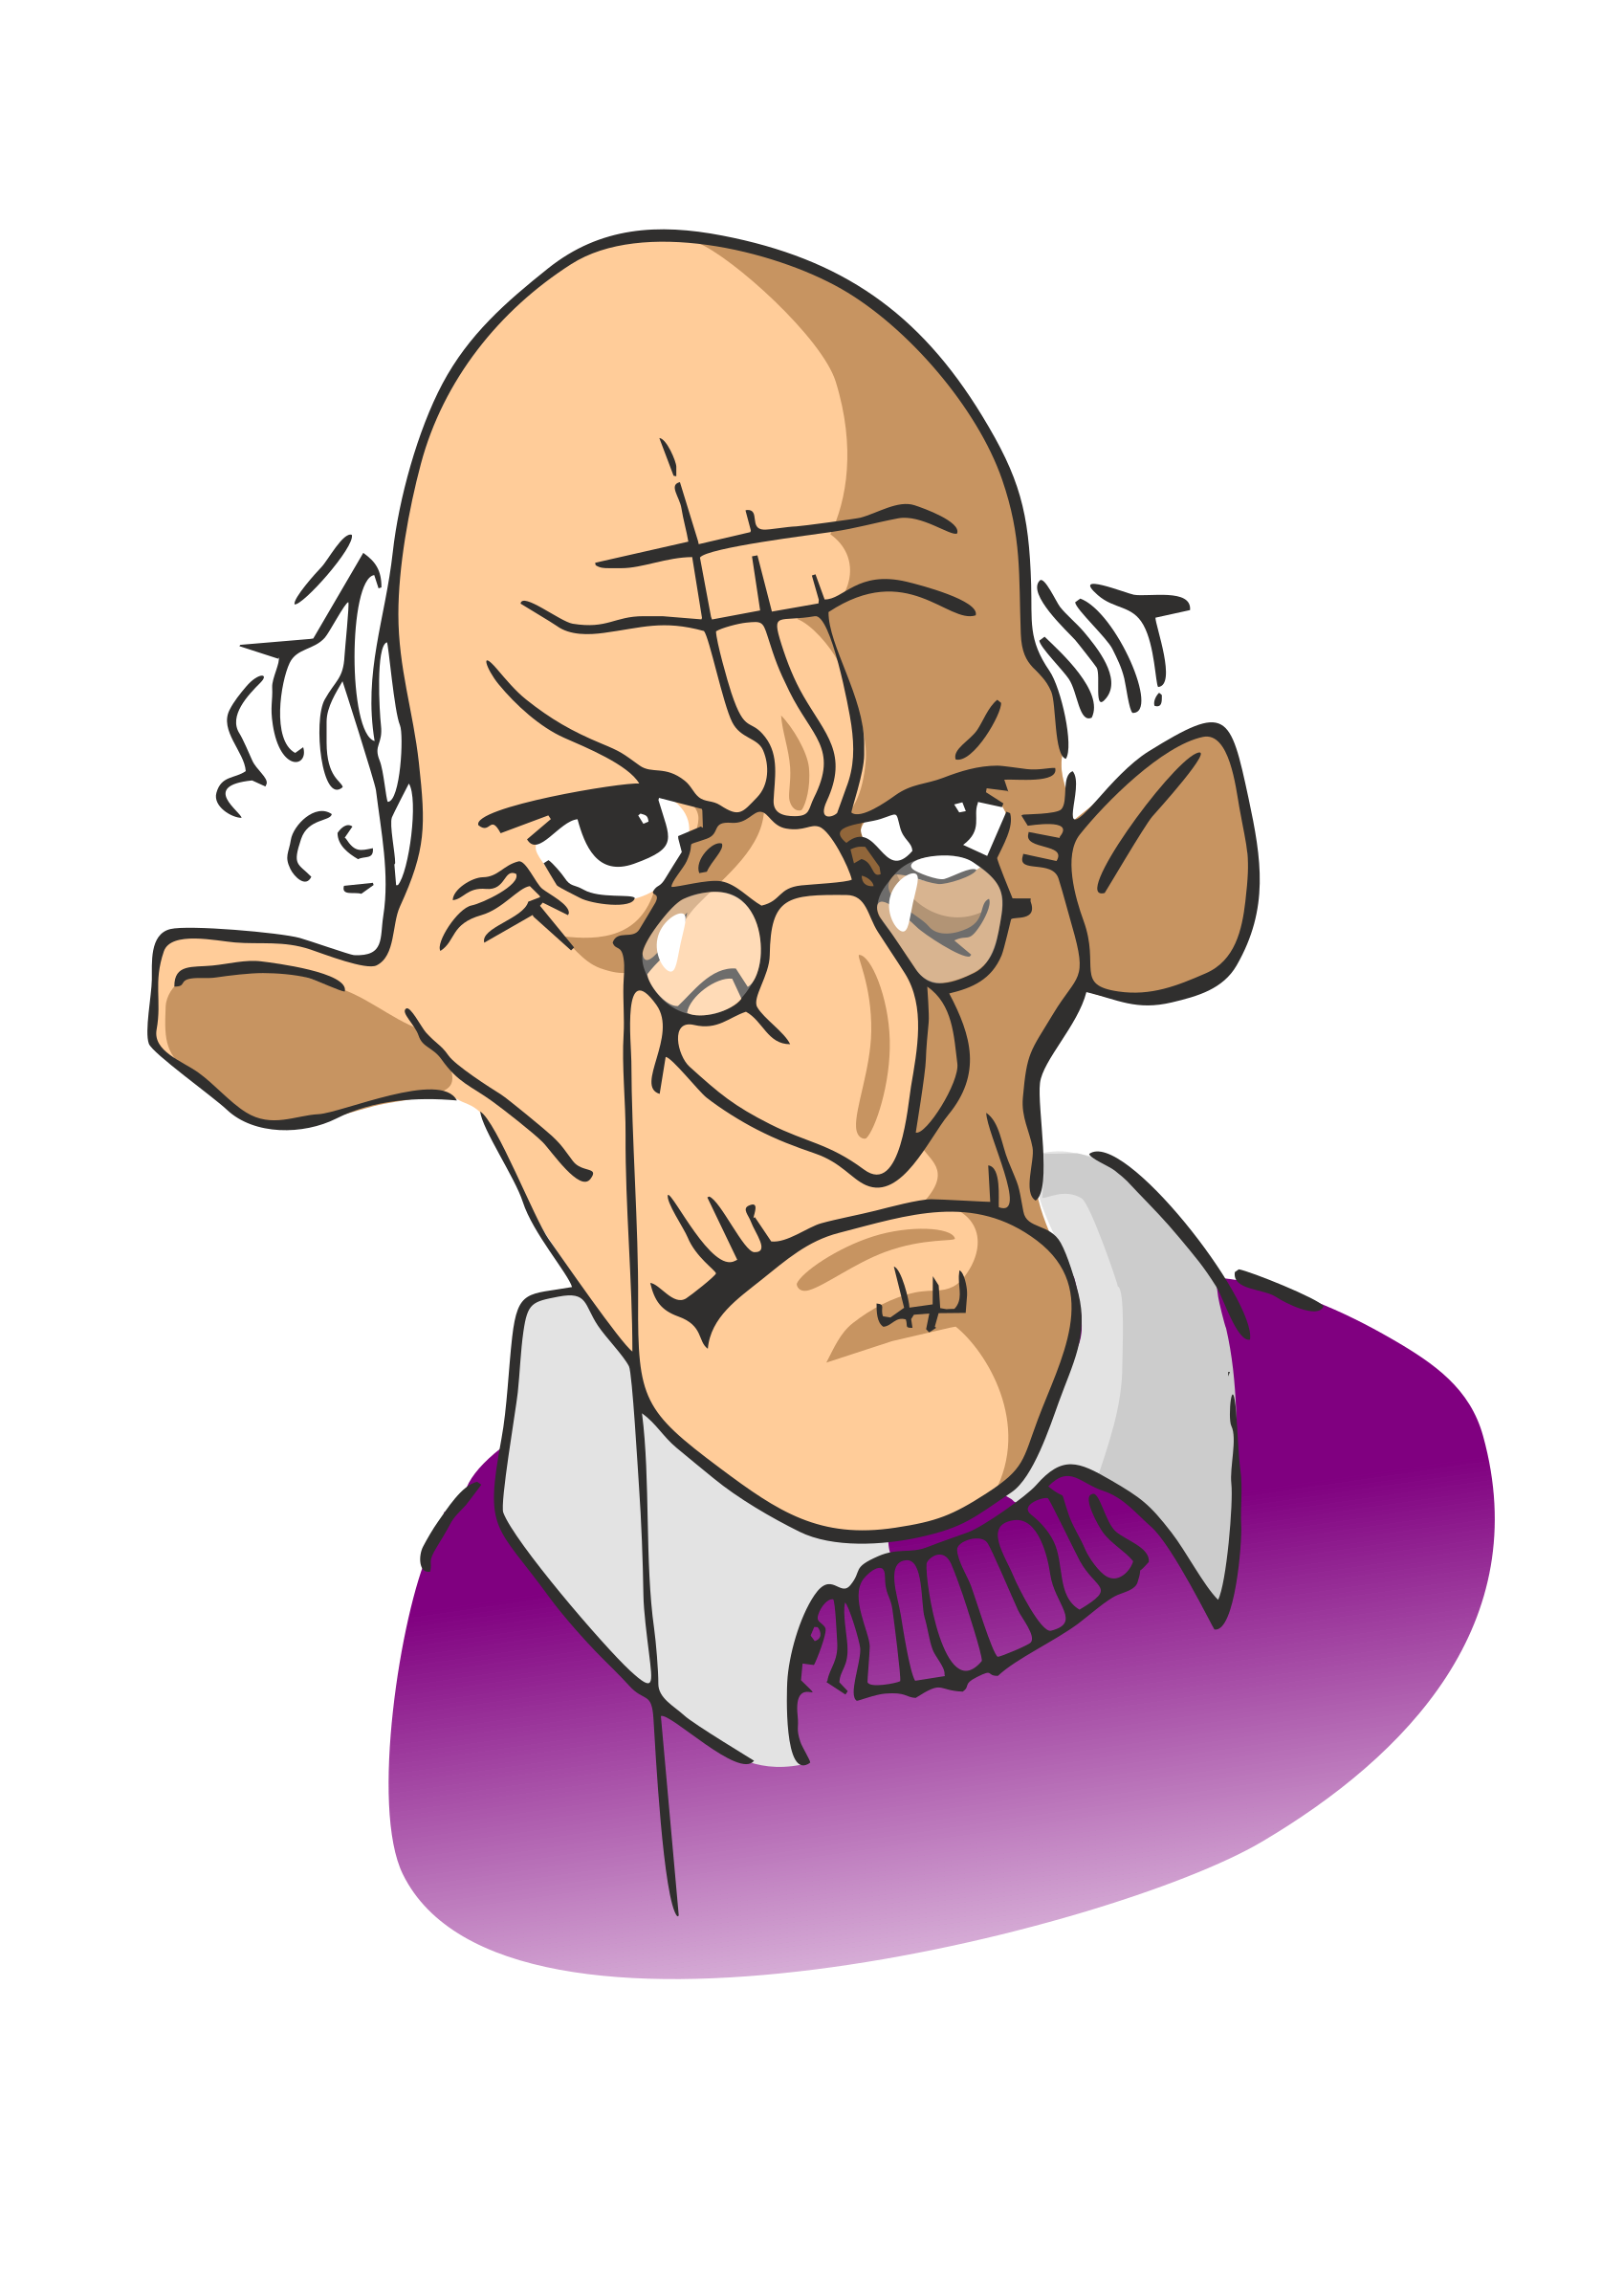 Person beautiful by mariana. Patient clipart old man